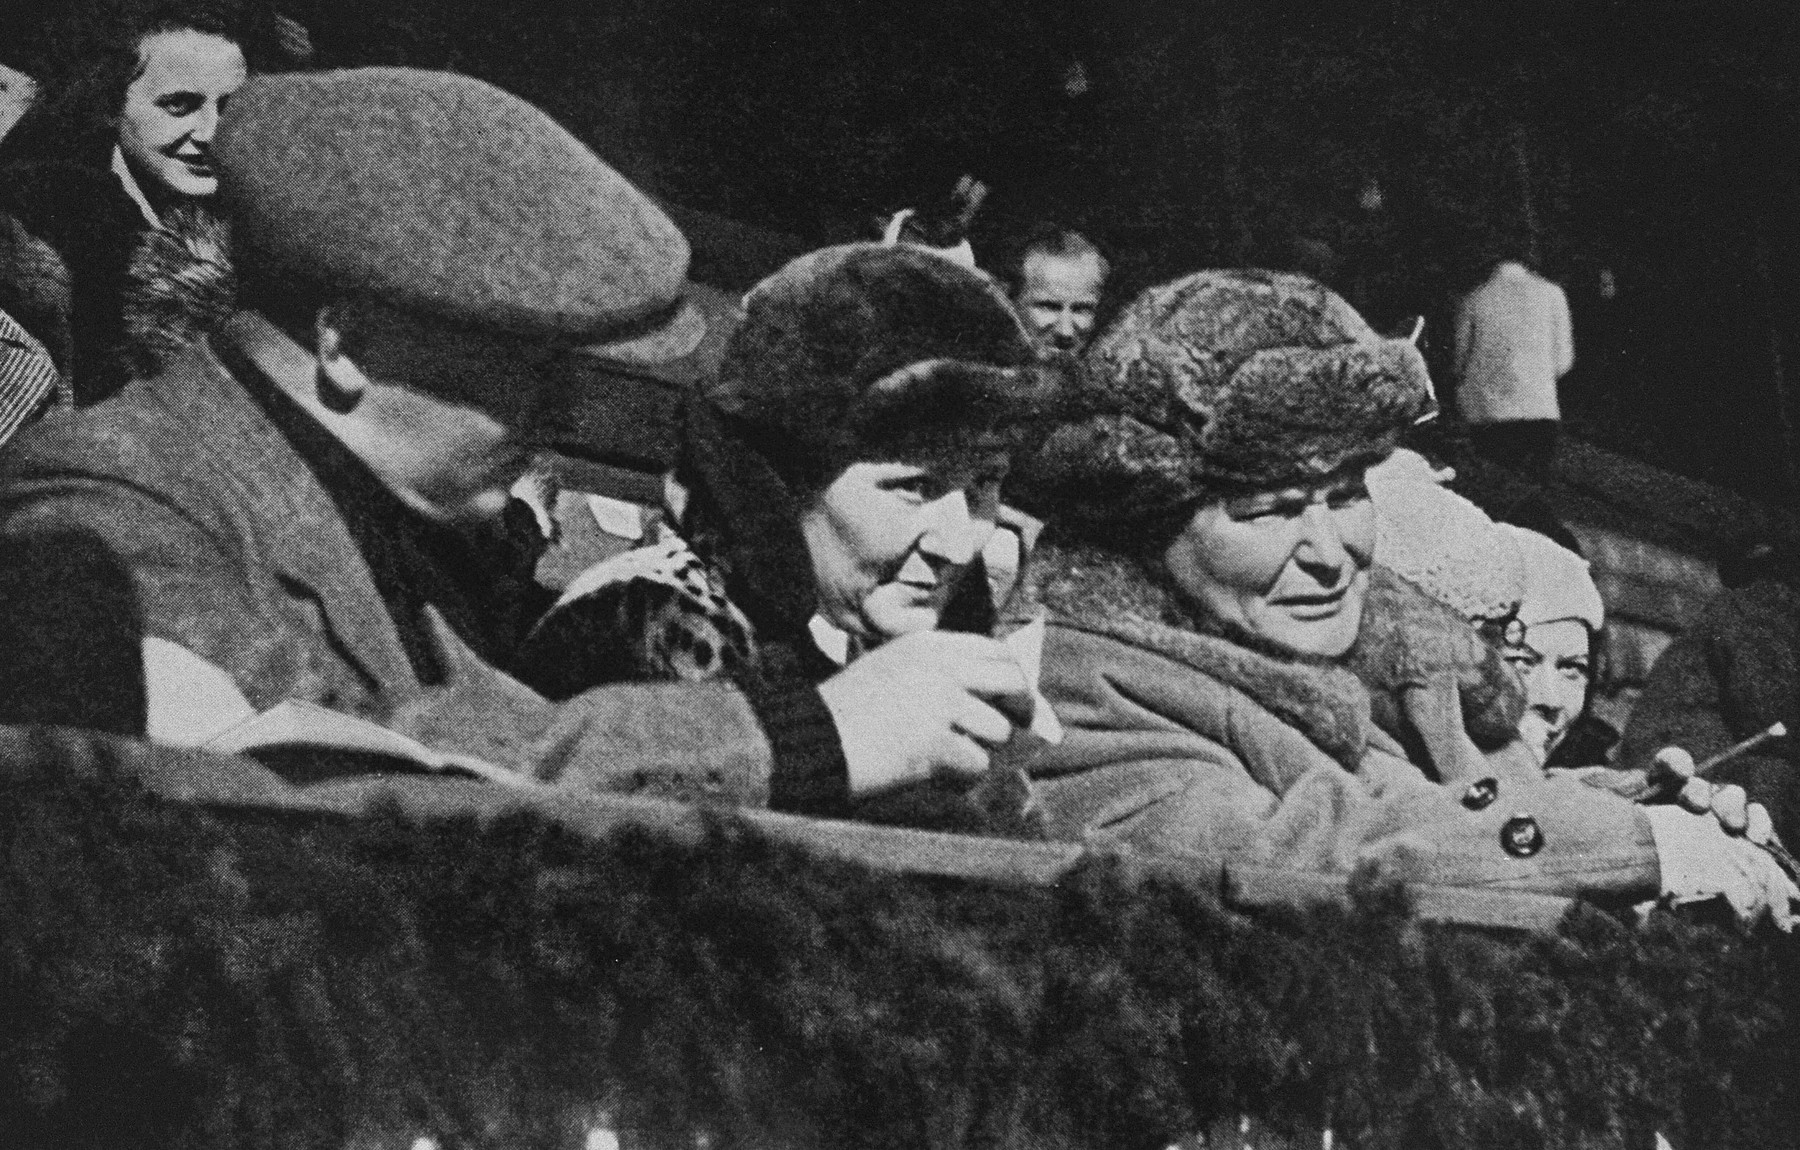 Hermann Goering watches an ice hockey game at the Winter Olympics.